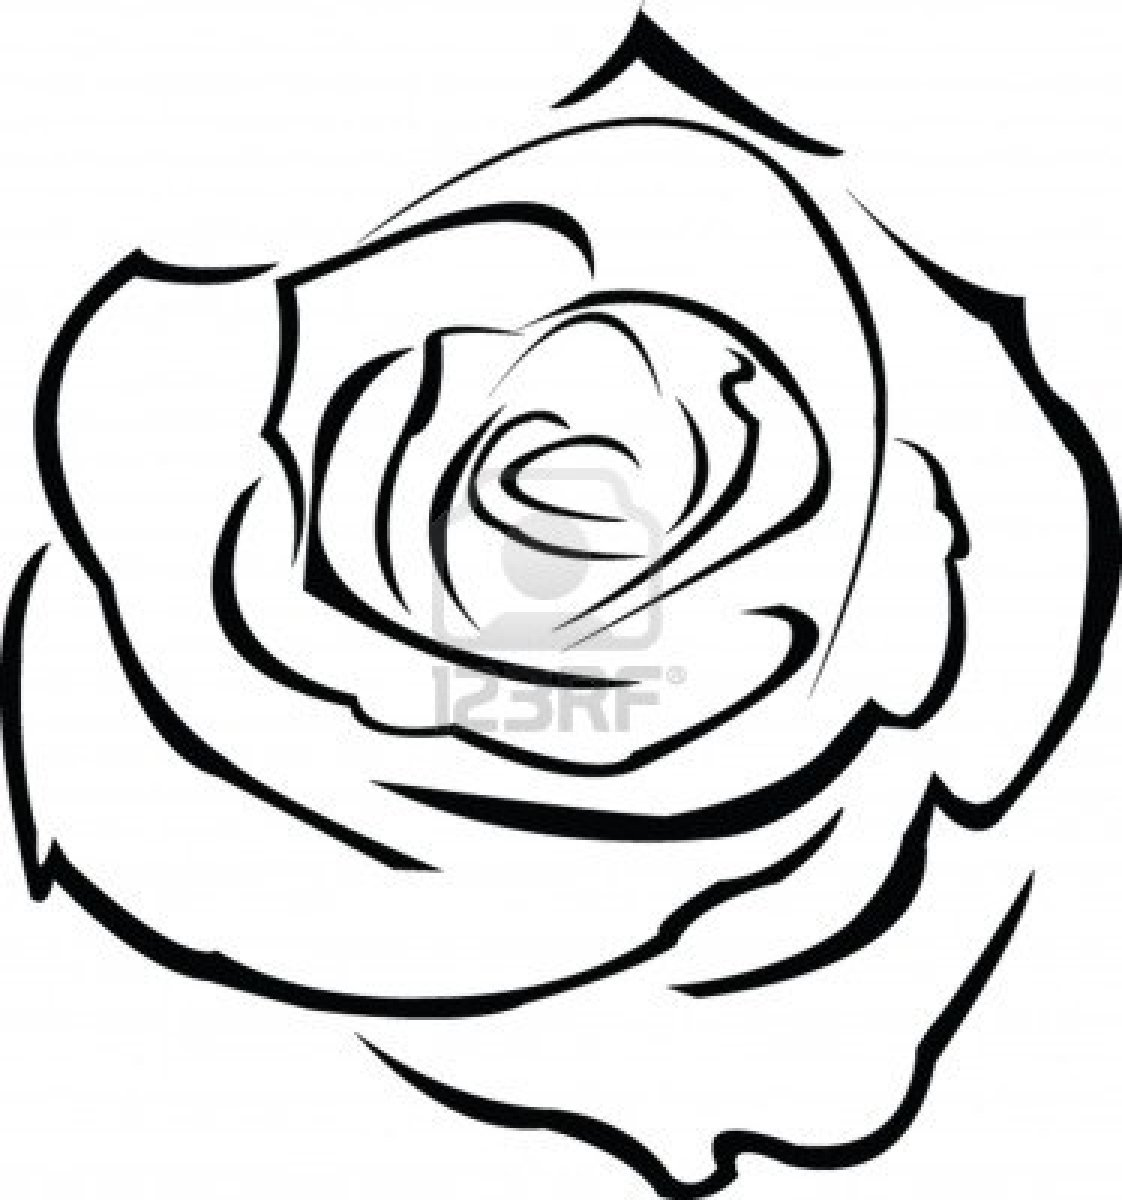 Rose Outline Clipart - Clipart Suggest